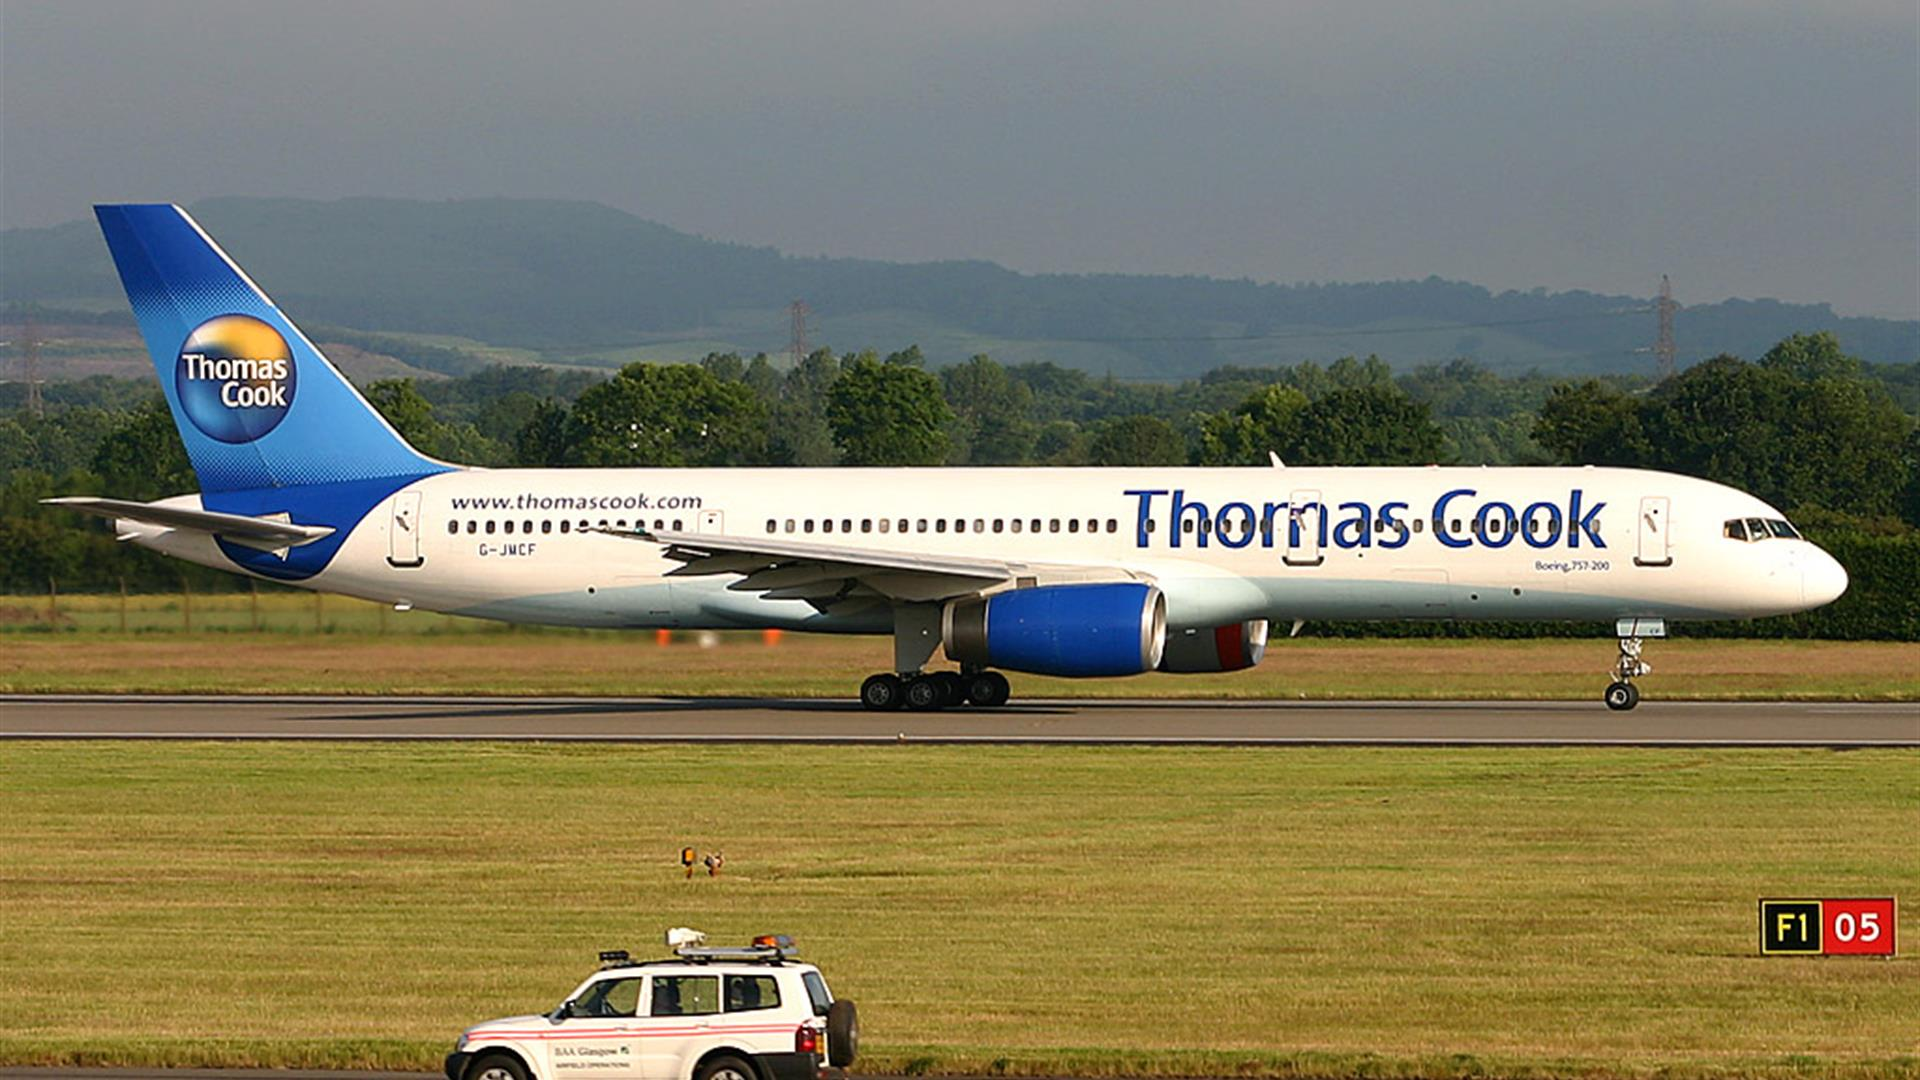 Thomas Cook Airlines 757